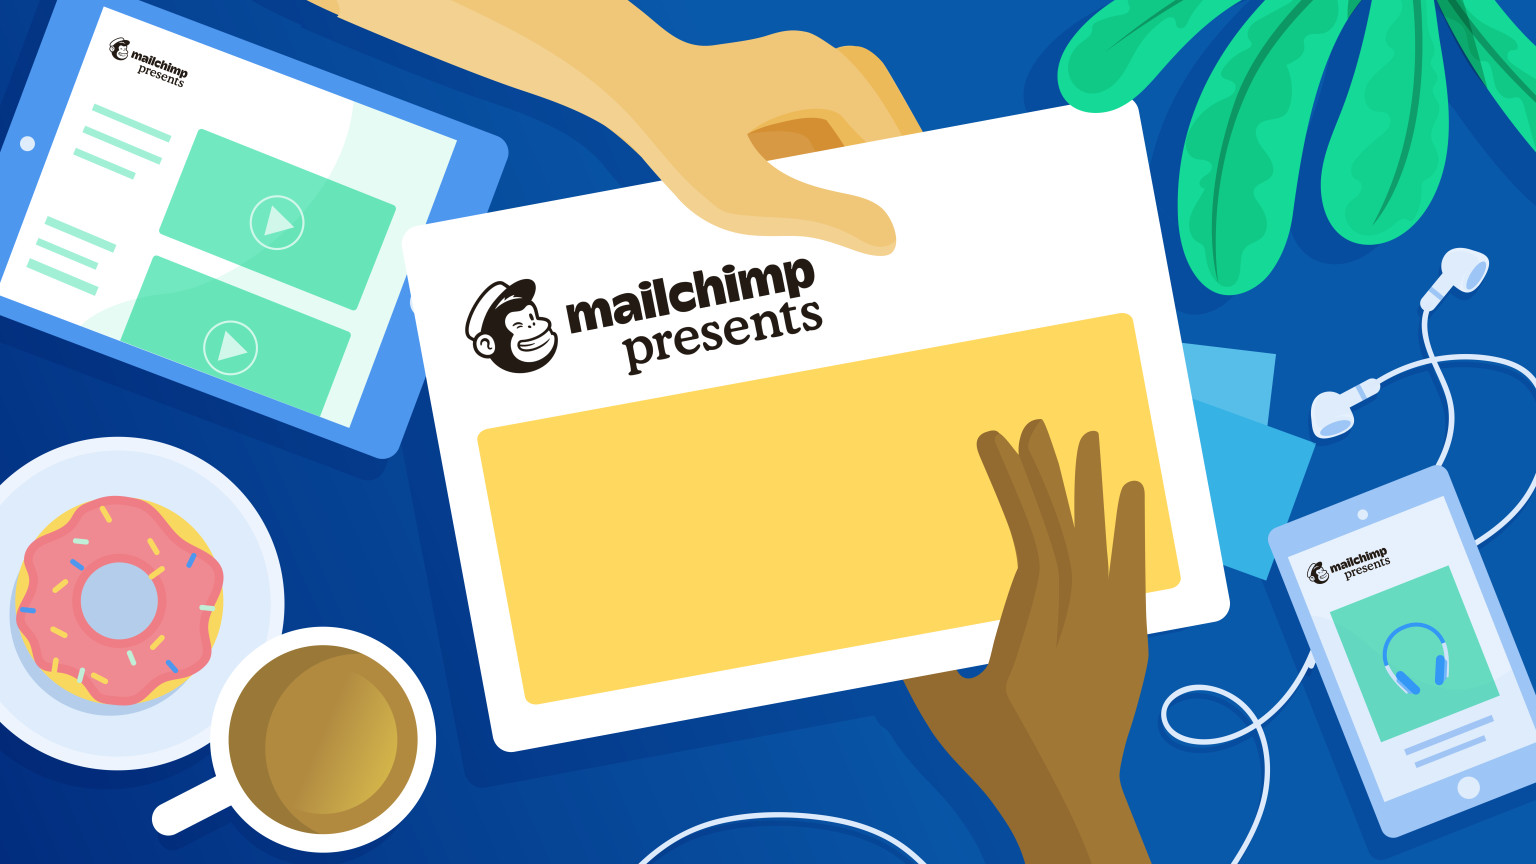 Mailchimp Presents, Work & Co, and Contentful